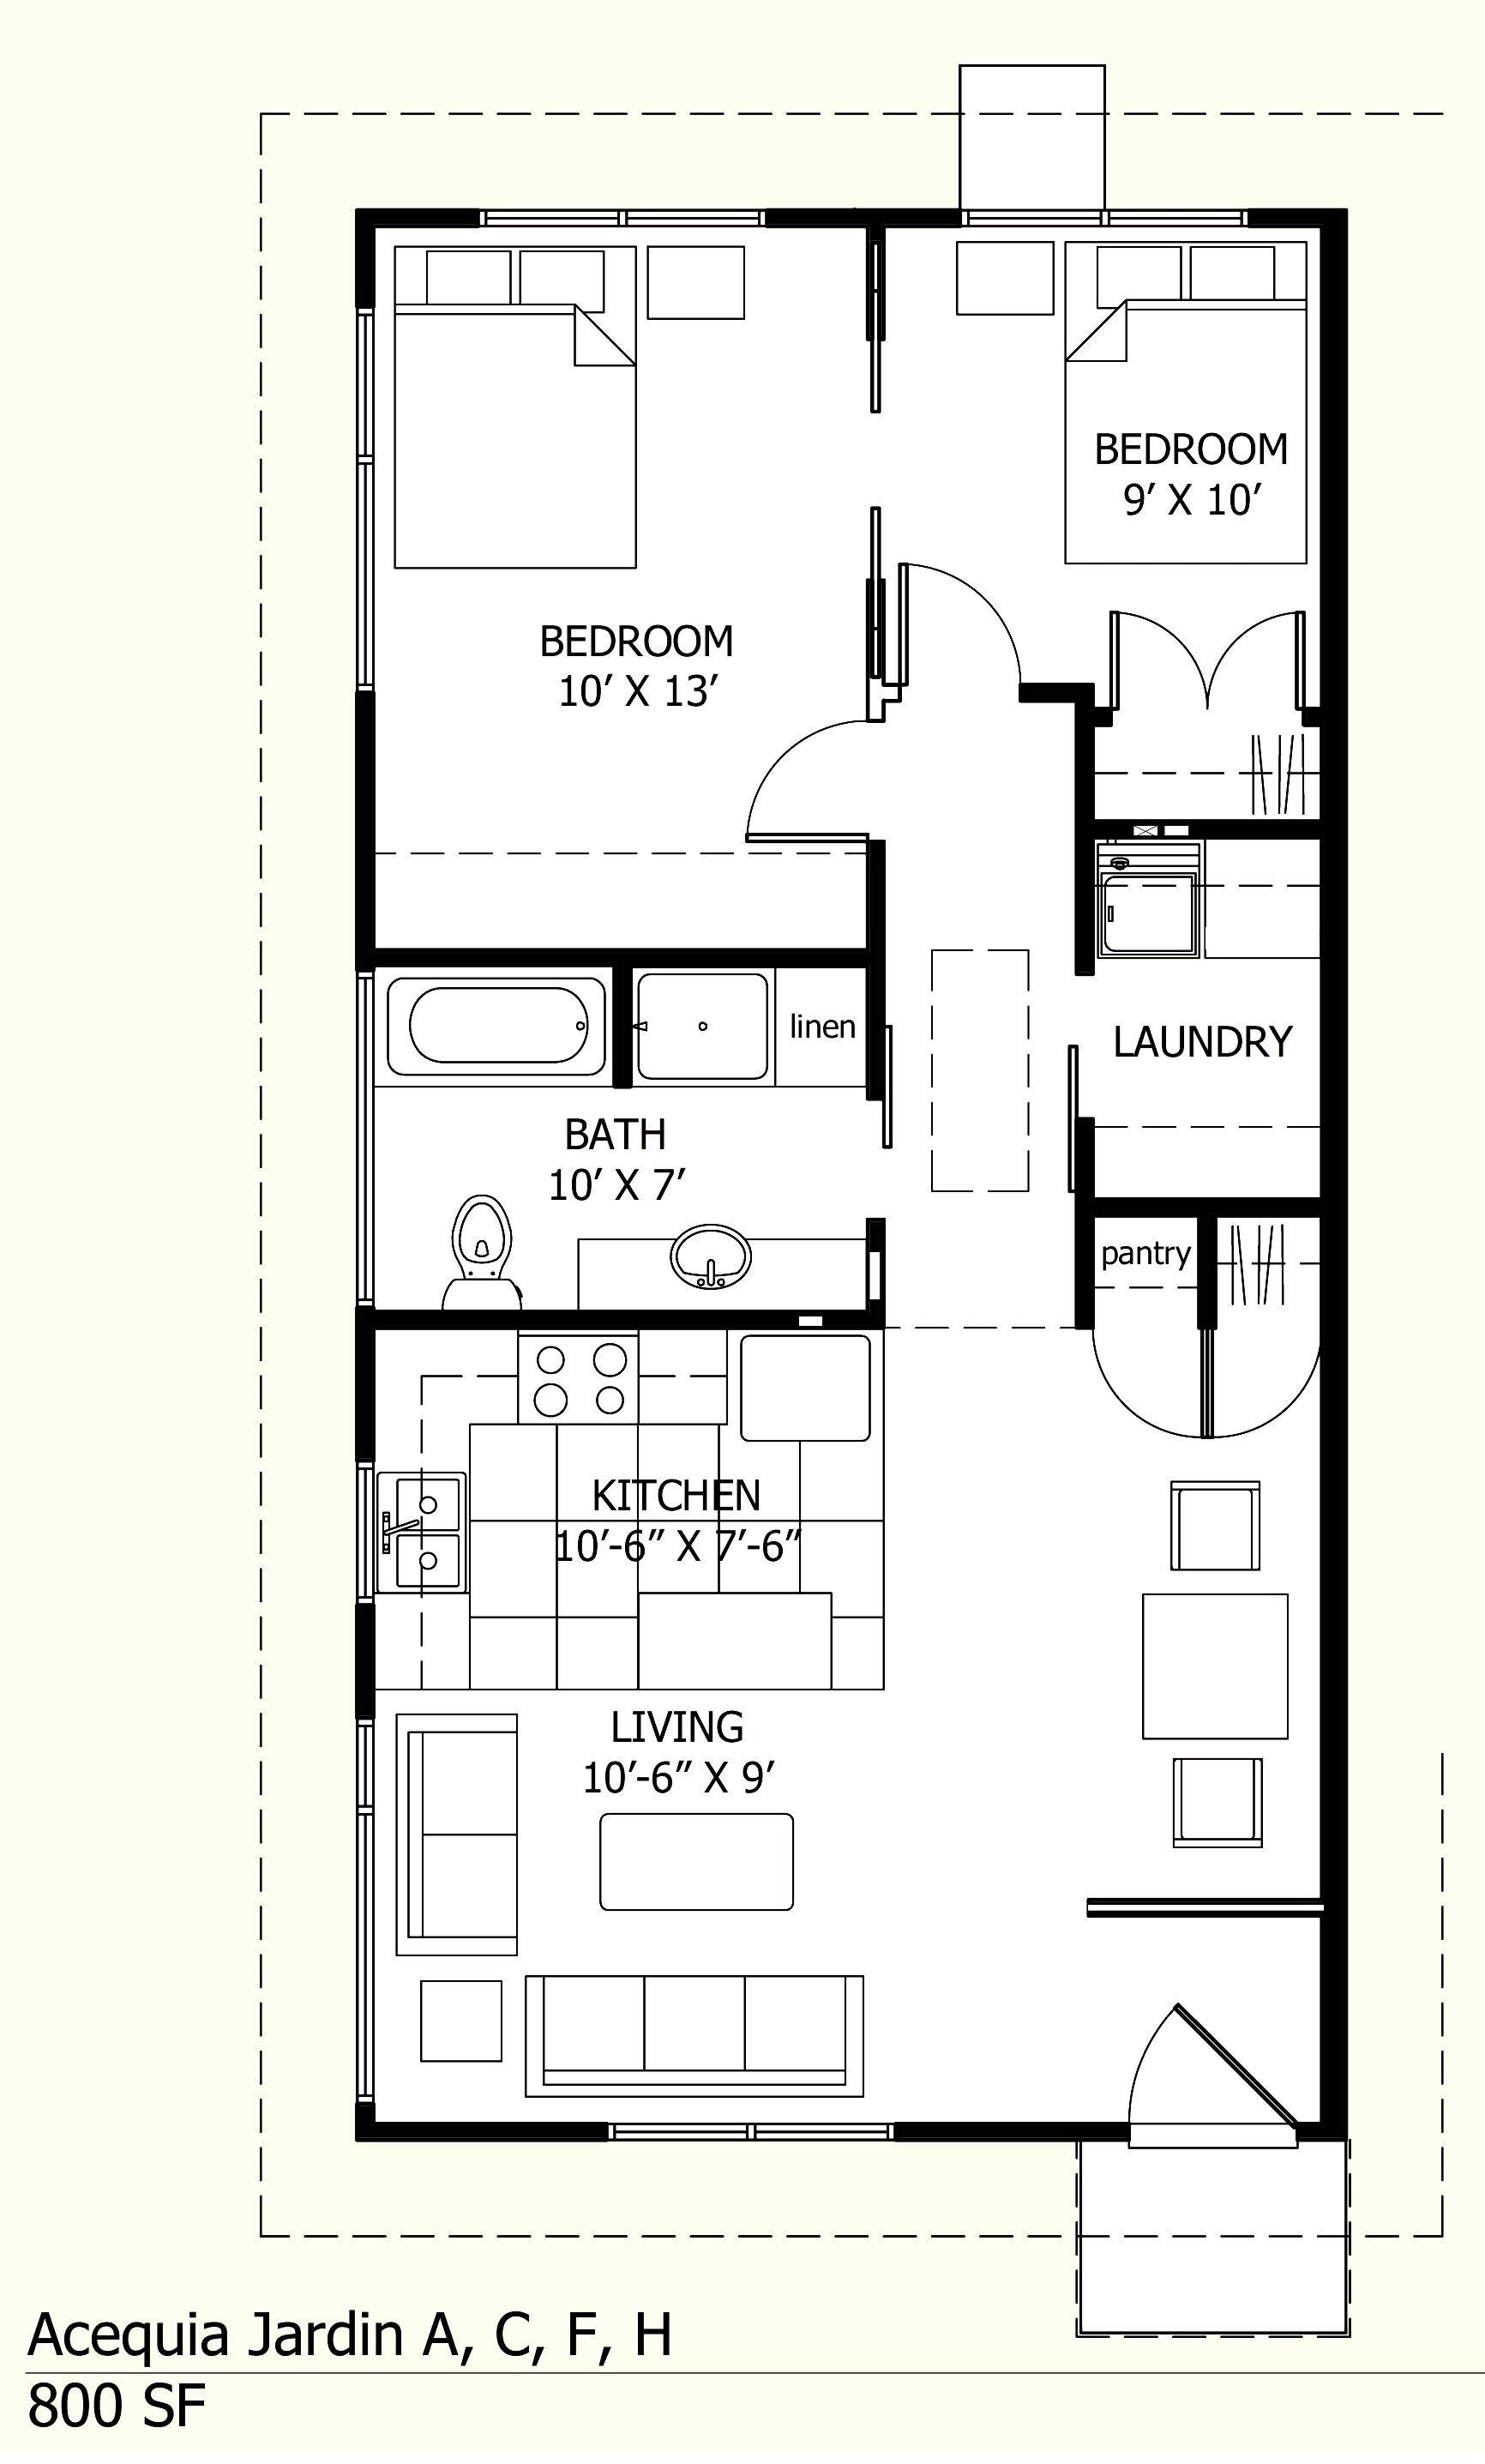 2 Bedroom Apartment Blueprints Small House Plans Under 600 Sq Ft Stephniepalma 600 Sf